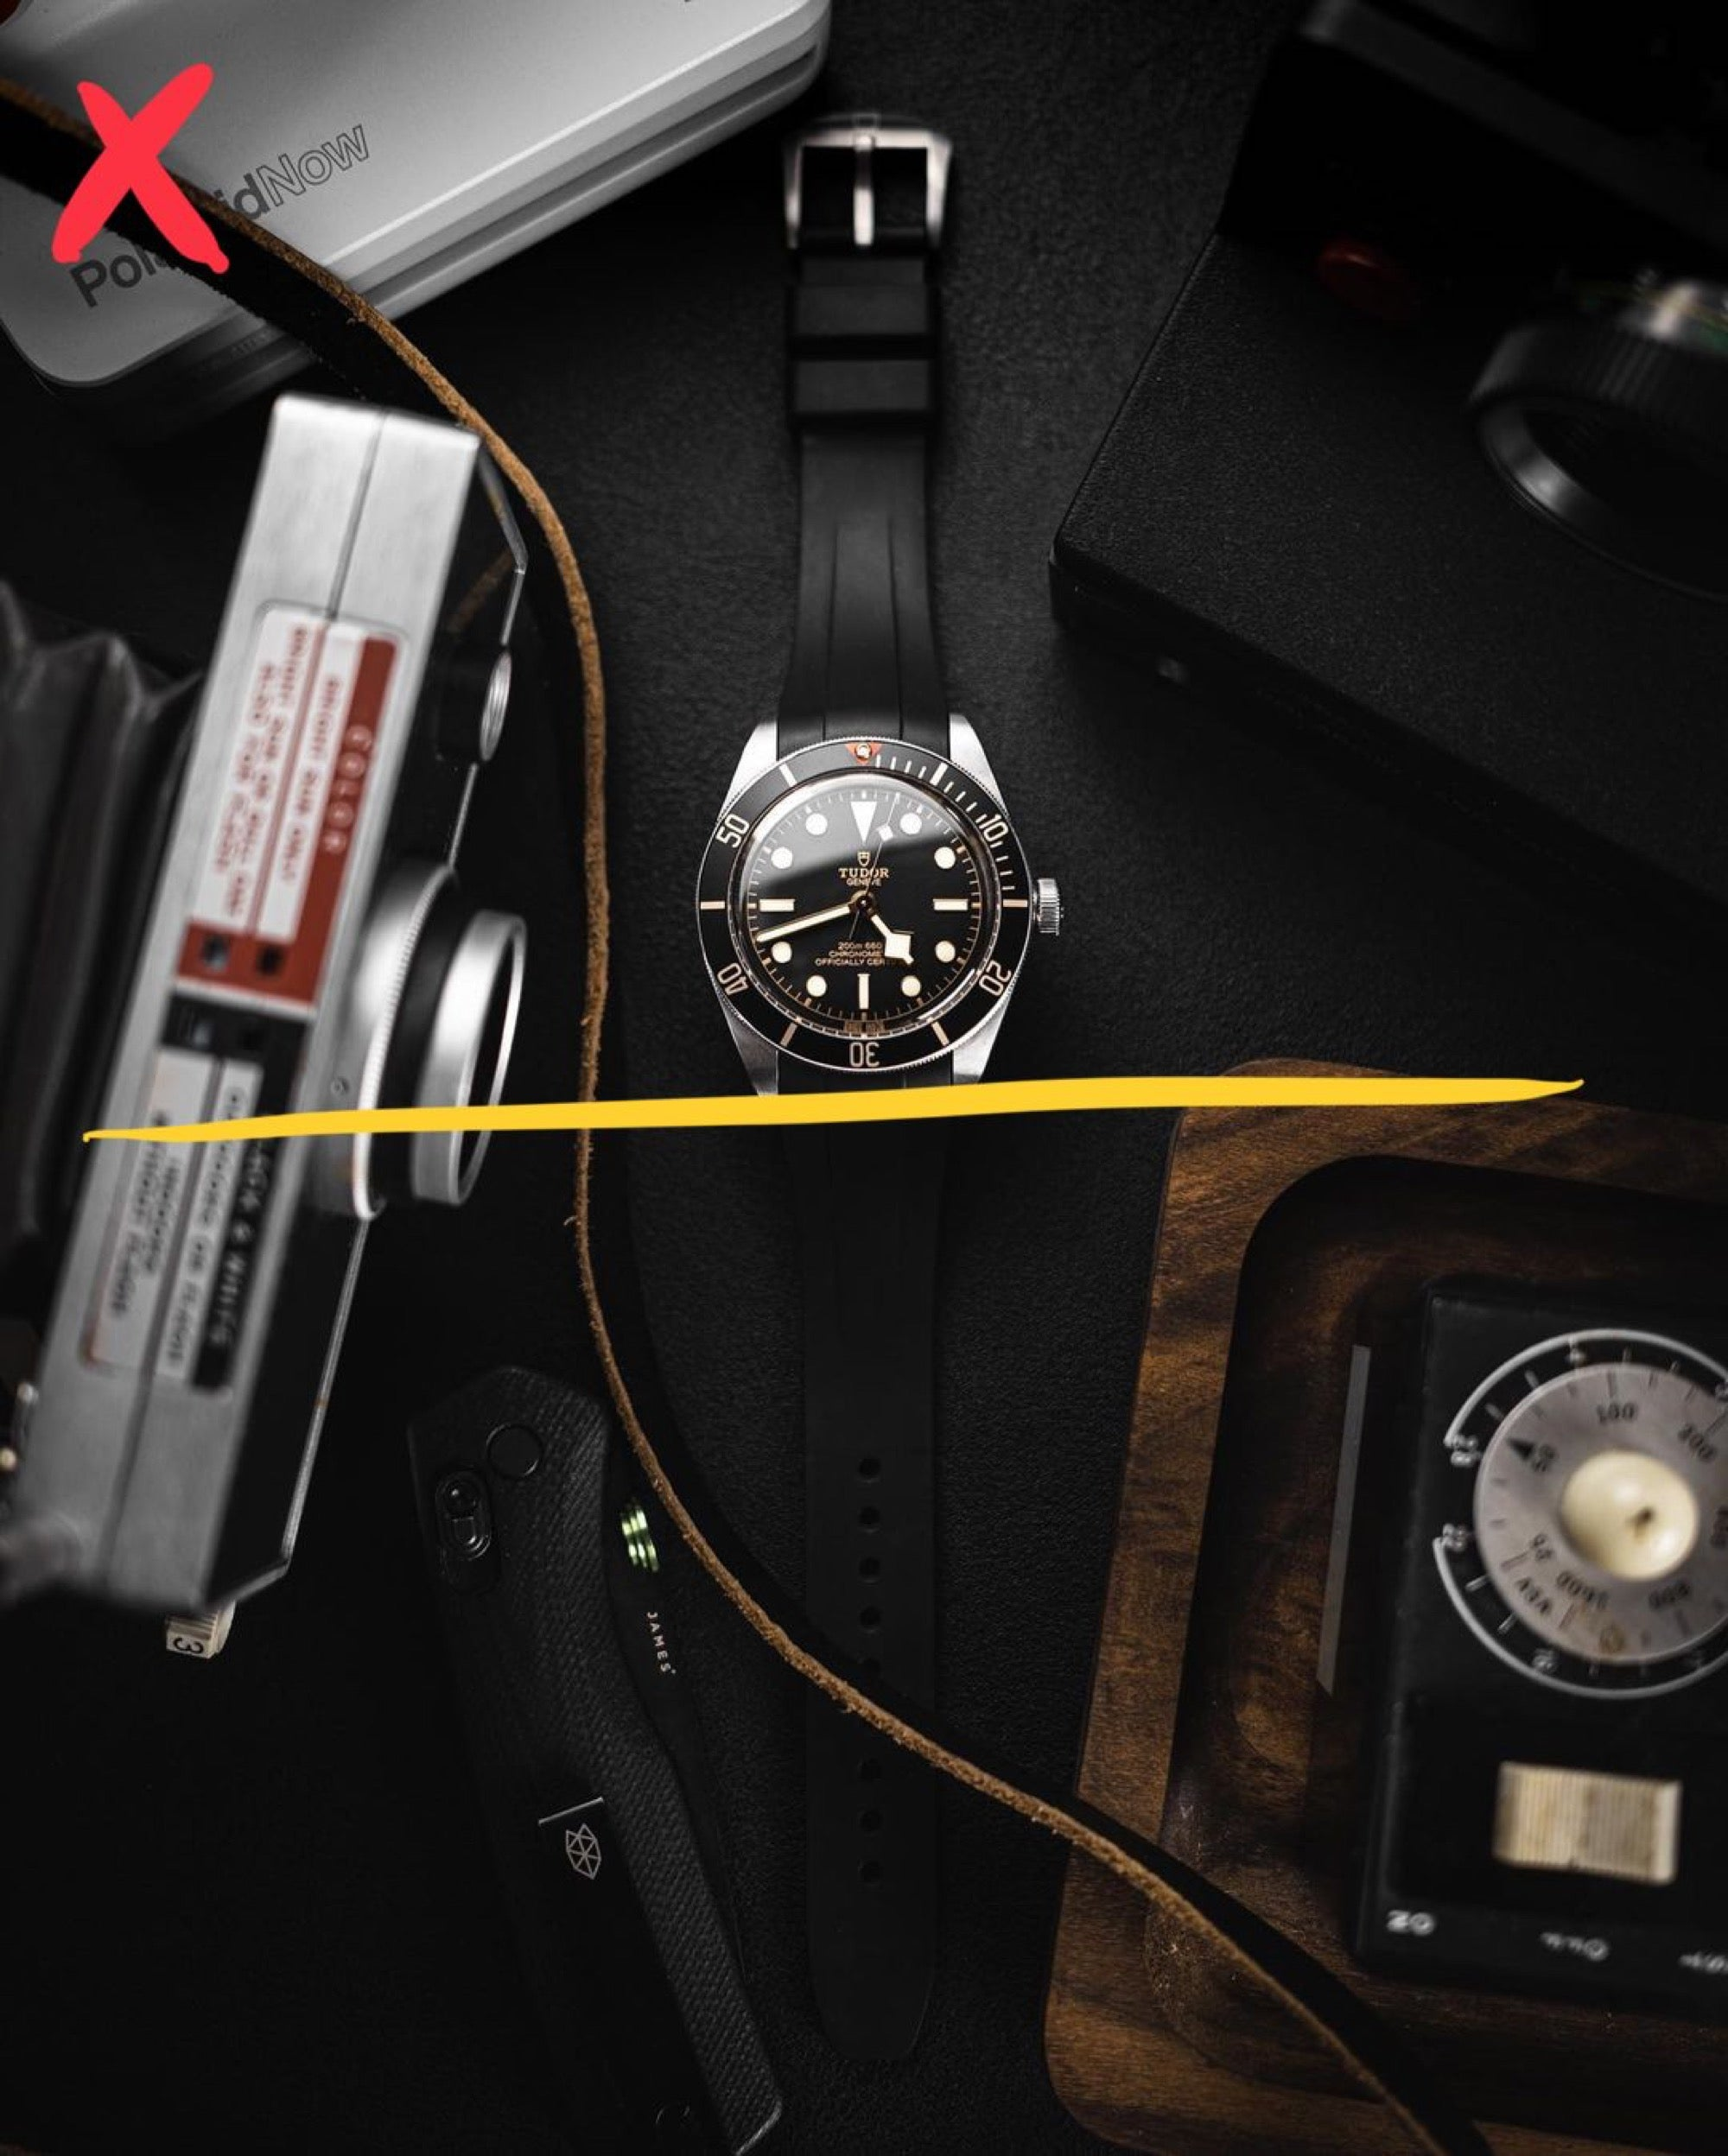 4 lessons on how to properly crop a watch photo